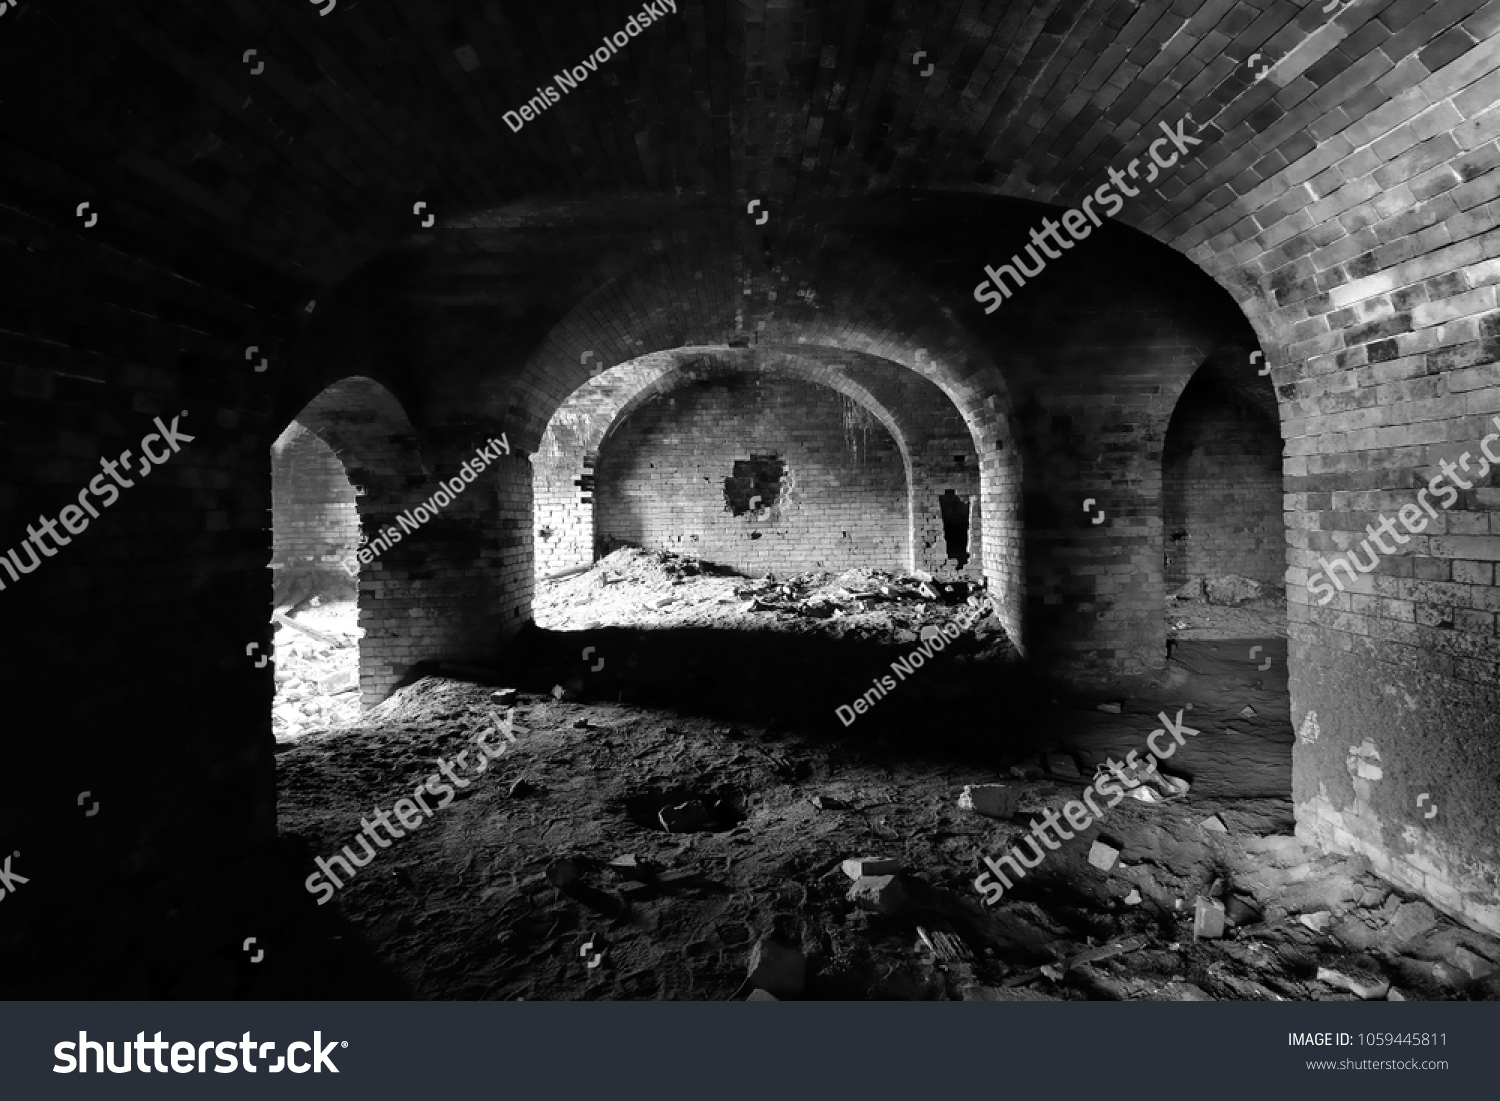 Black and white photograph of the interior of an old ruined brick building mystical picture